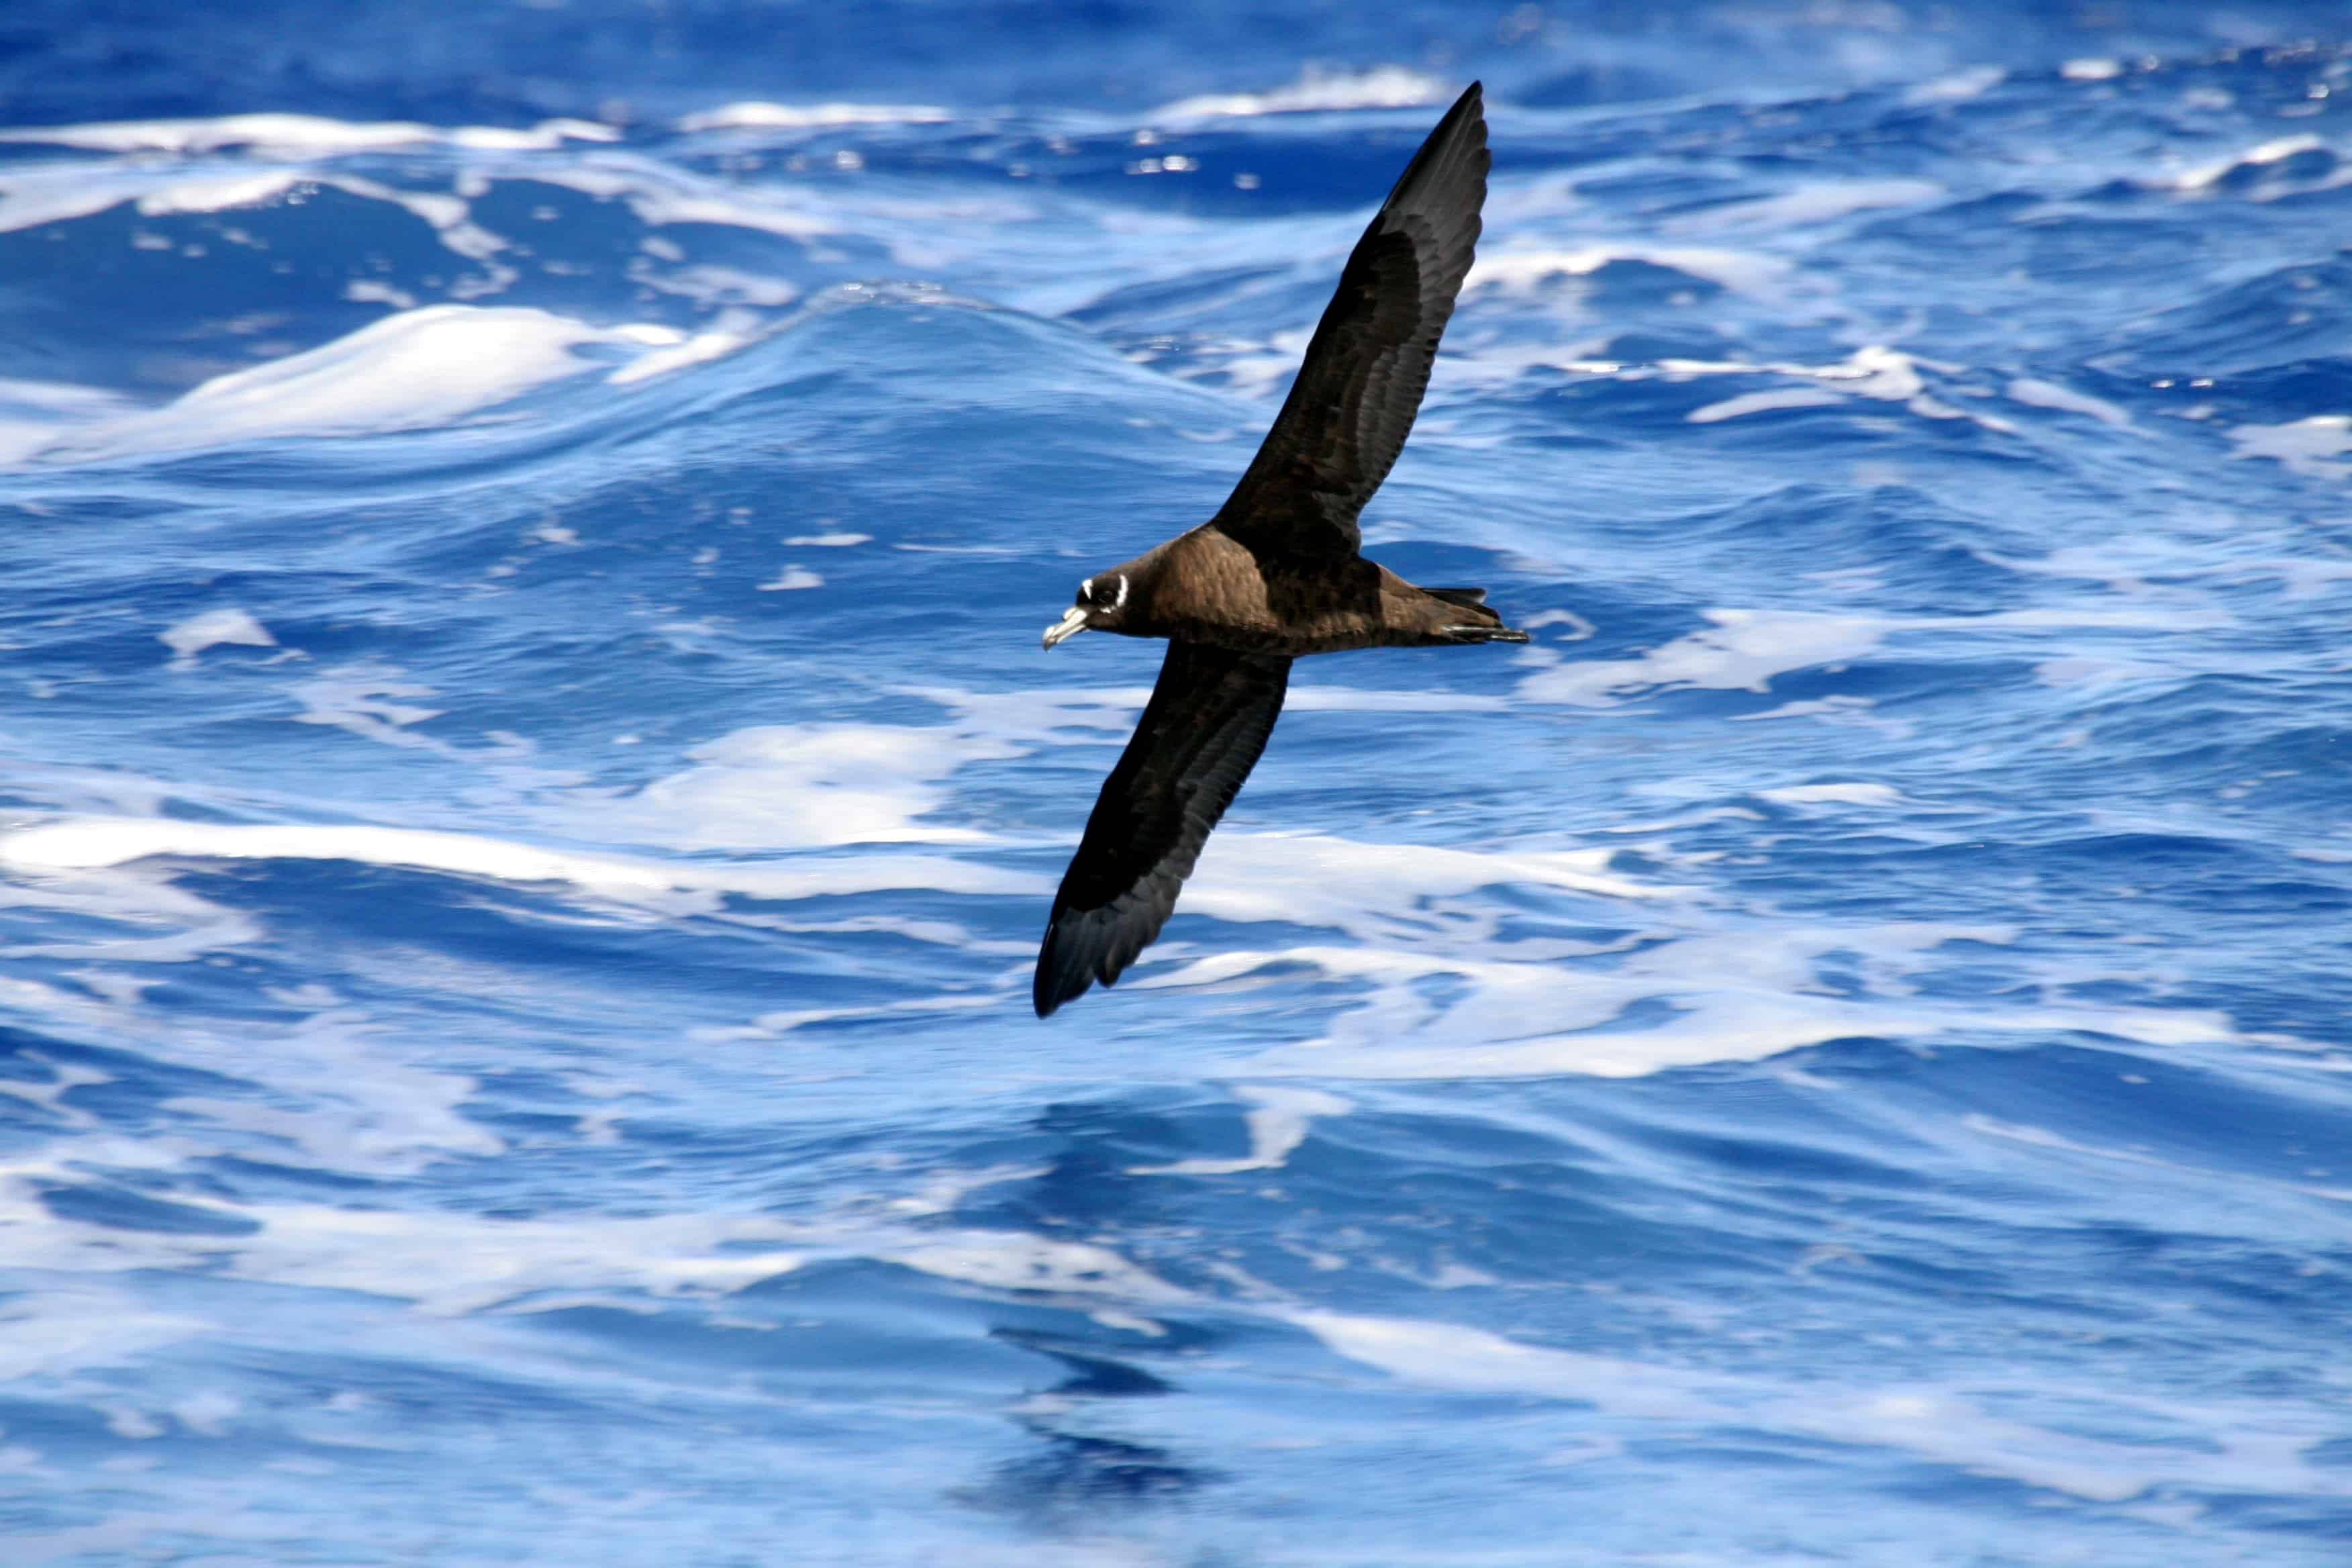 Spectacled petrel Procellaria conspicillata off Tristan da Cunha group; this species breeds only on Inaccessible Island. Copyright: Dr Mike Pienkowski